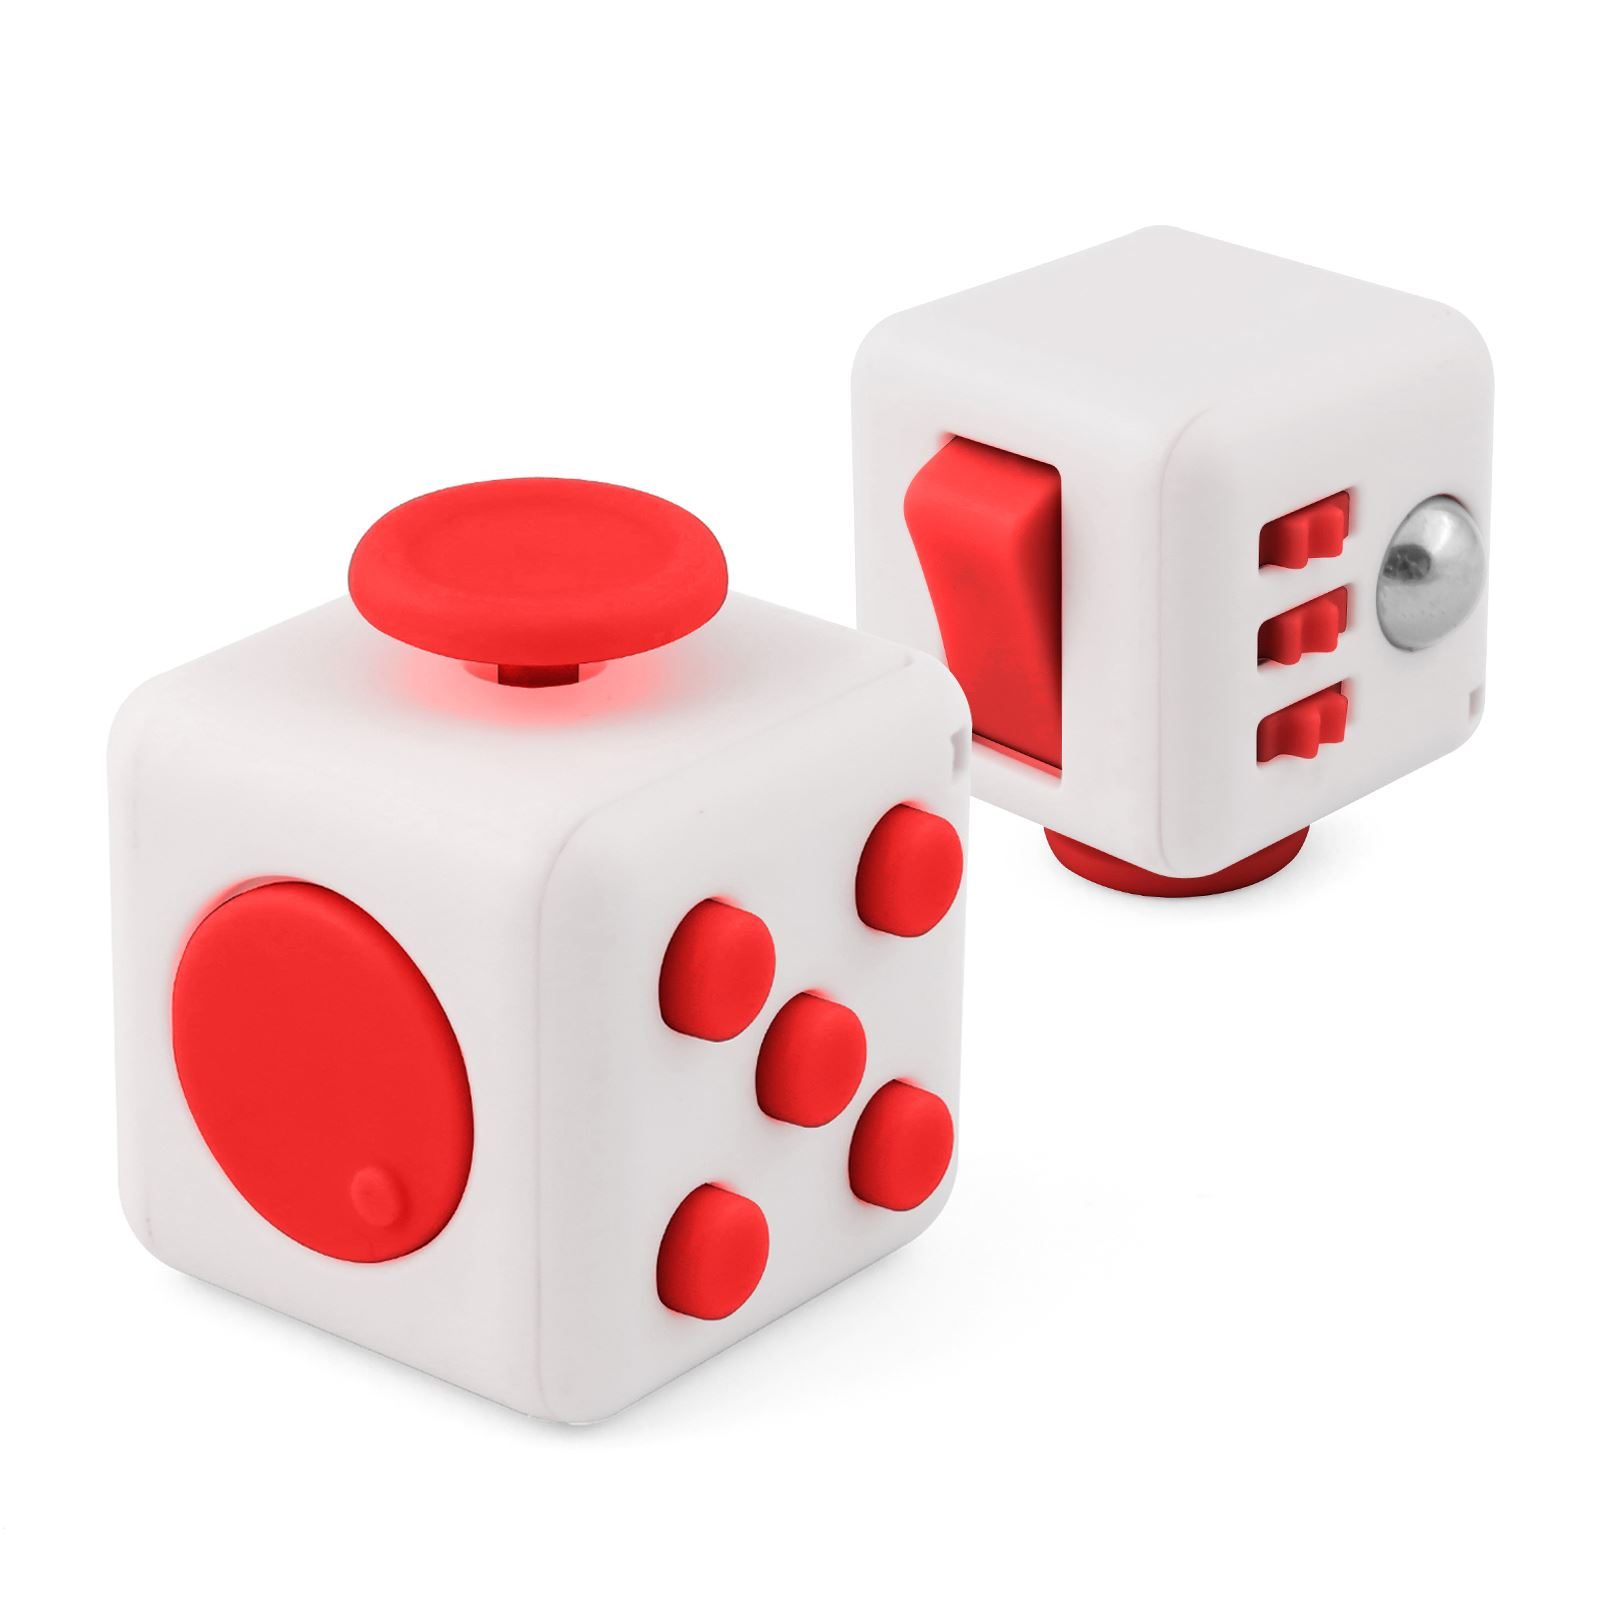 Toys For Grownups : Fidget cube desk toy adults kids stress relief box adhd